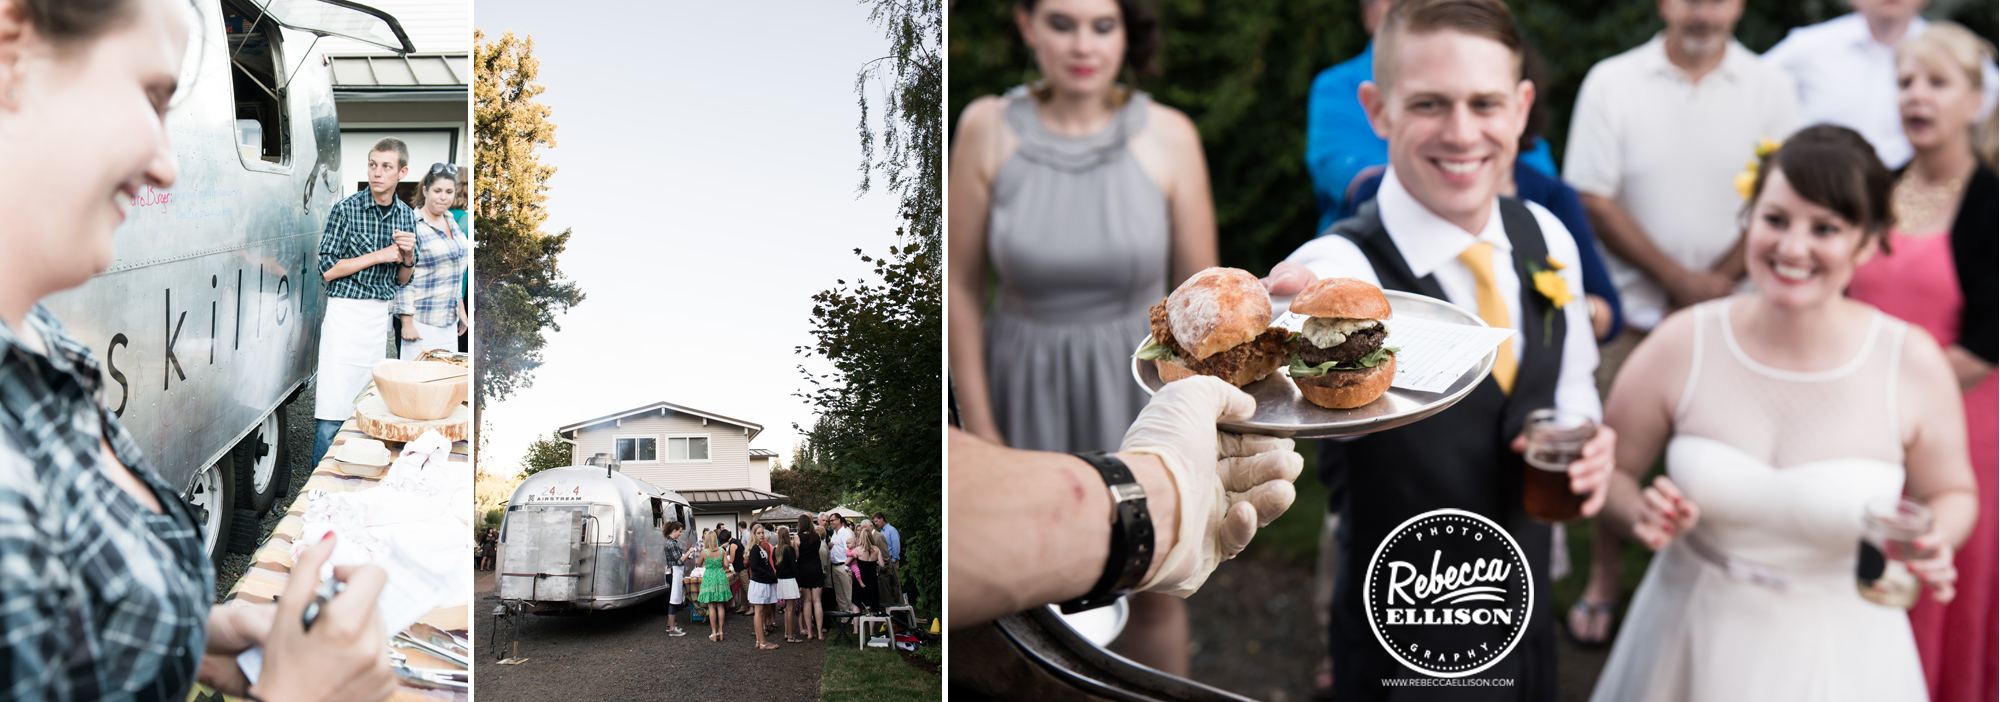 Food truck at a backyard beach house wedding reception photographed by seattle wedding photographer Rebecca Ellison